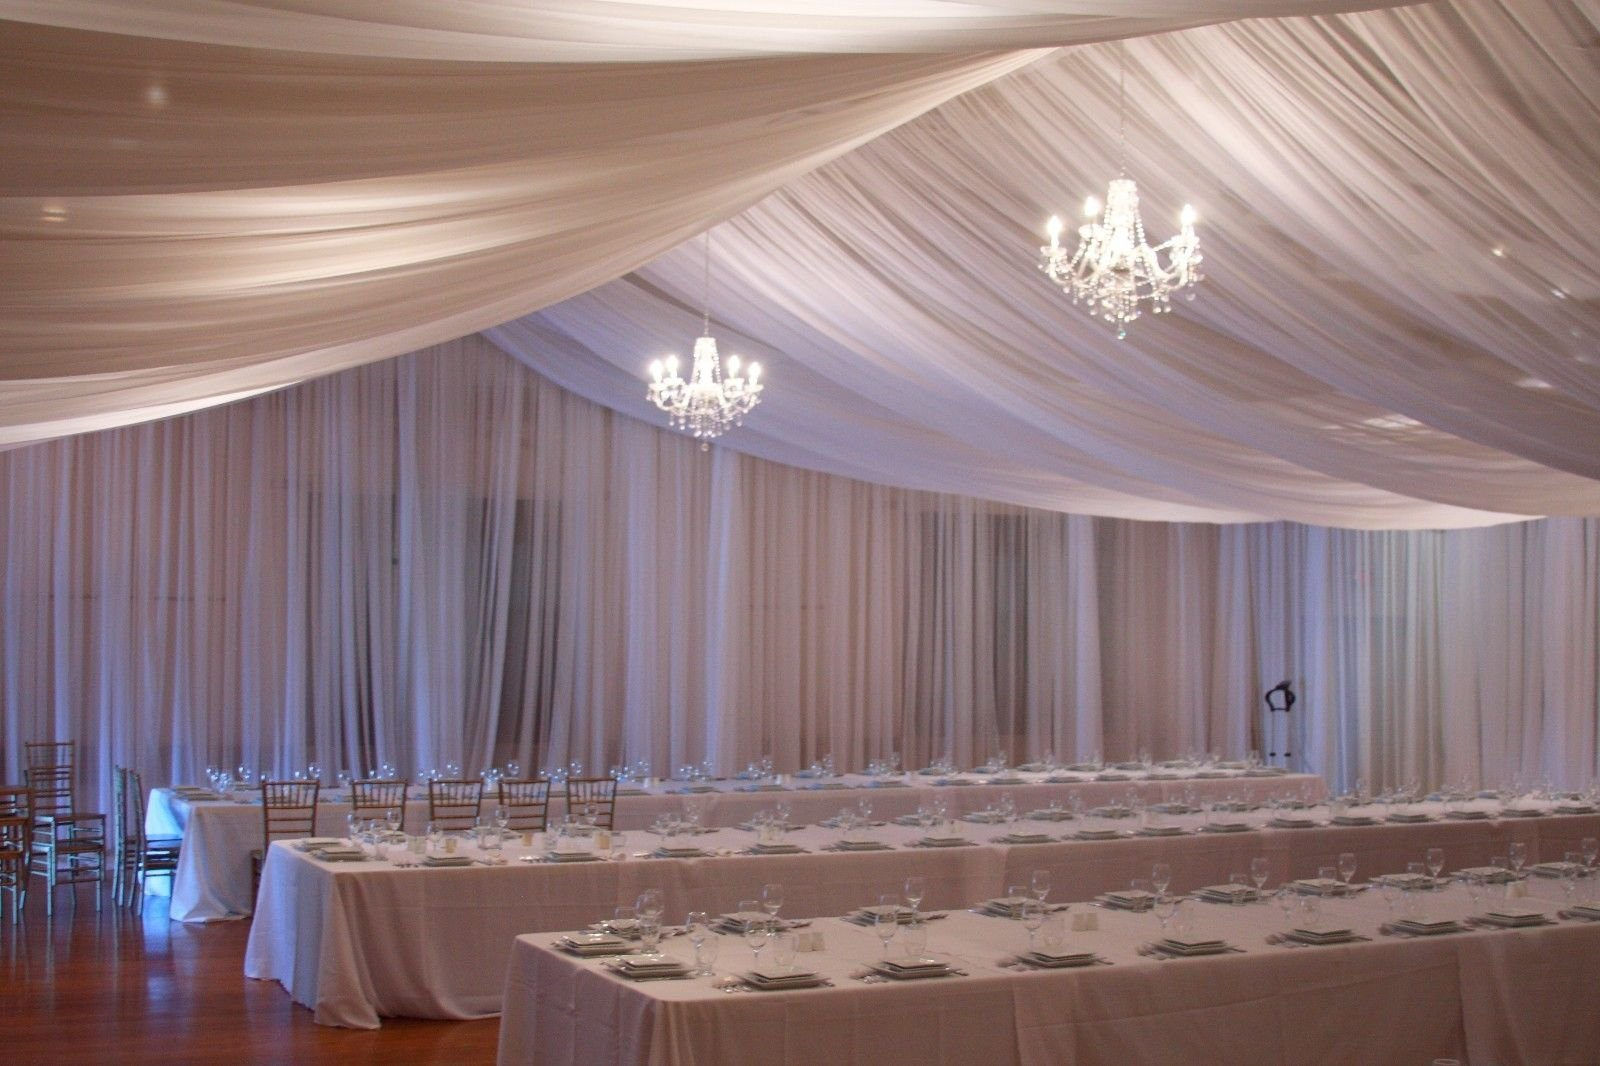 Ceiling Draping Ivory Sheer Ceiling Curtain Voile Chiffon Ceiling Drape 10 Ft W X 60 Ft H Panel Wedding